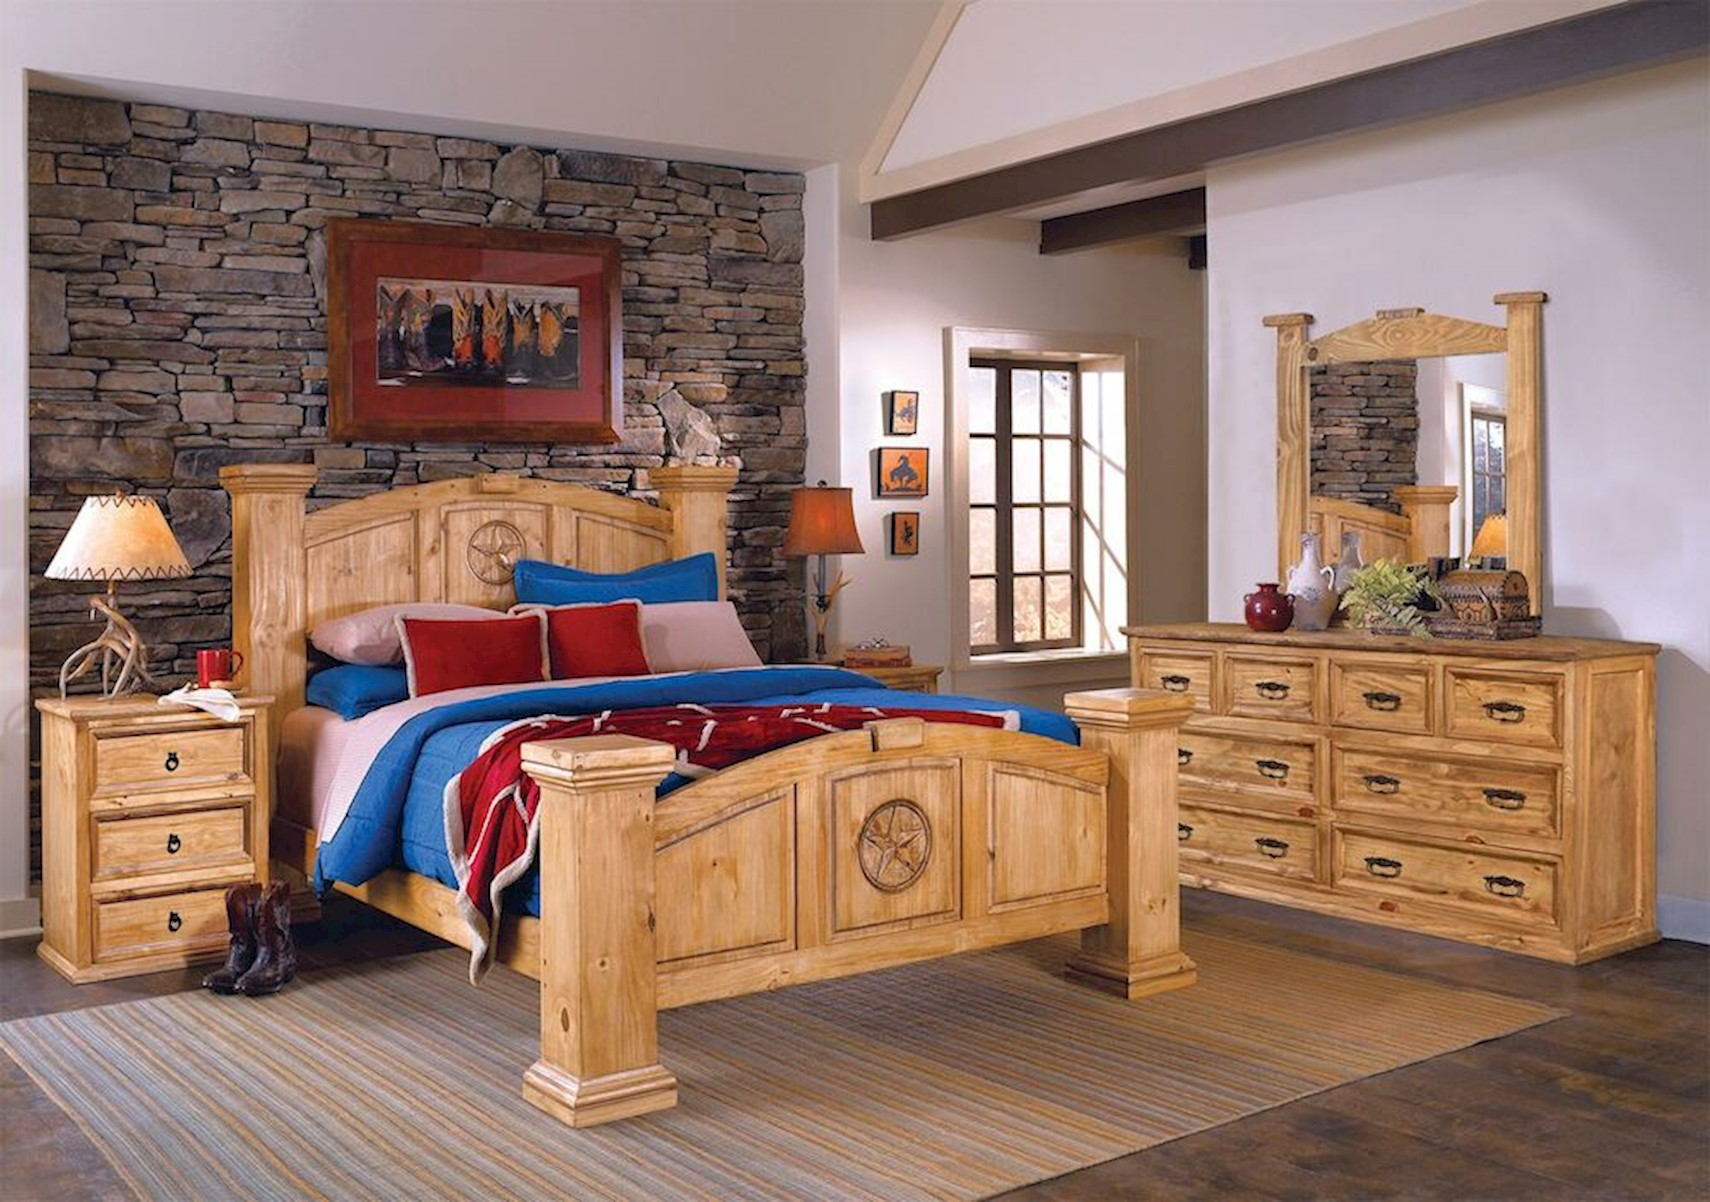 Lacks Texas Rustic 4 Pc King Bedroom Set